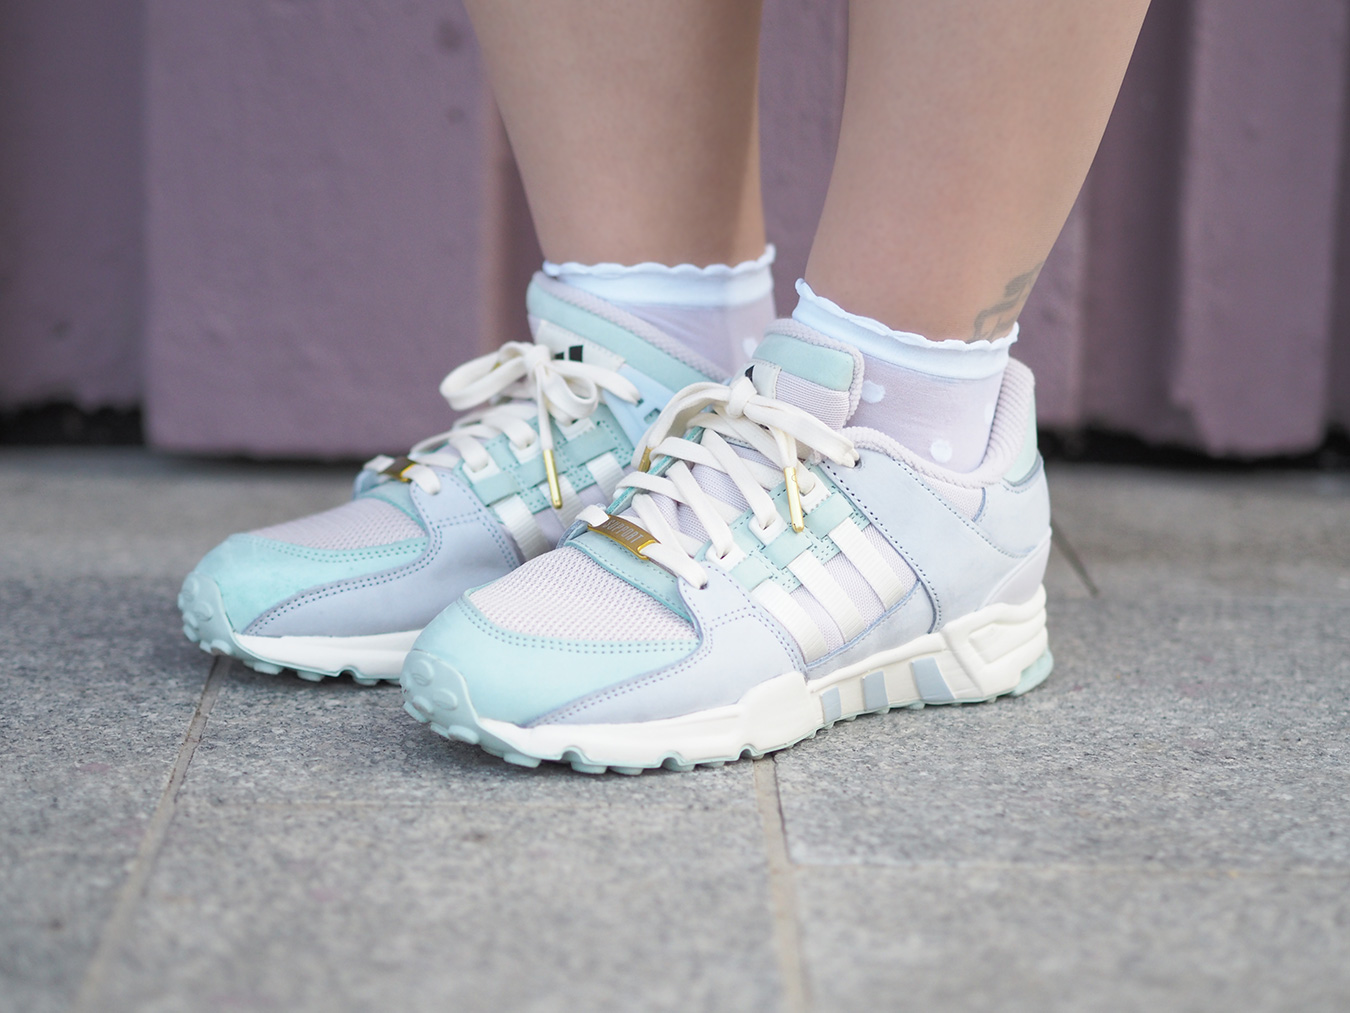 Adidas mieqt support pastel